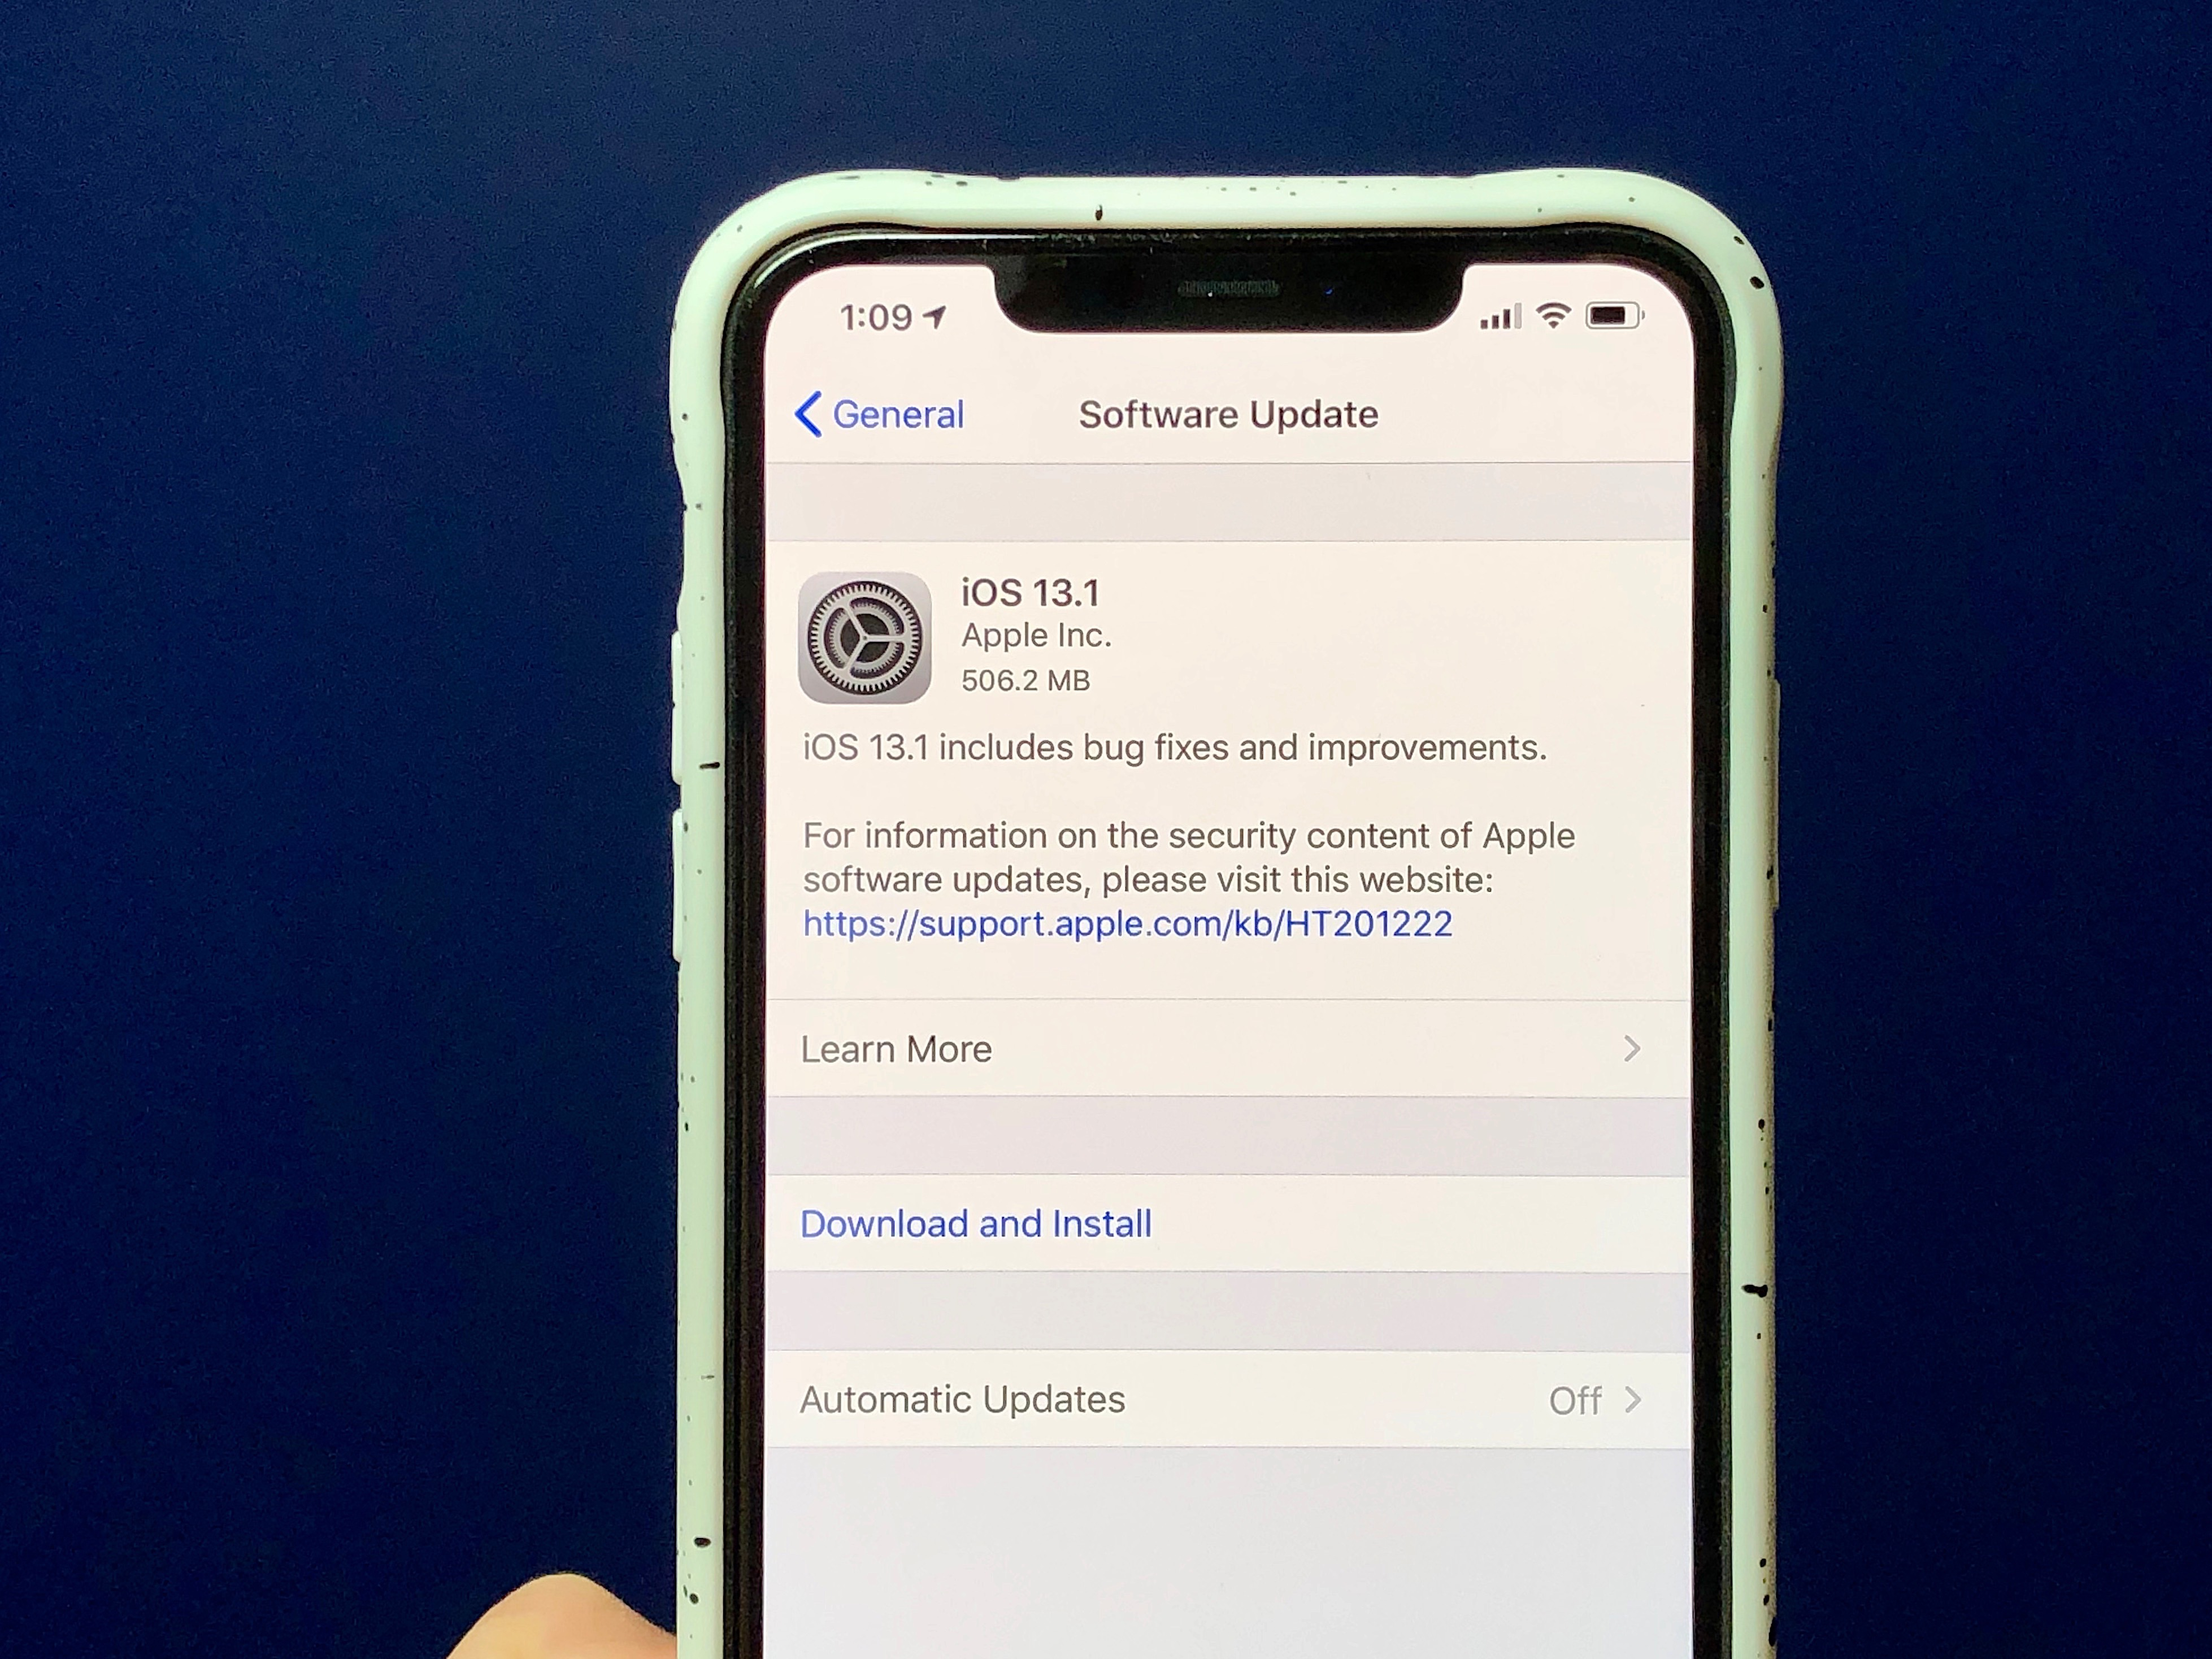 5 Things to Know About the iOS 13.1 Update